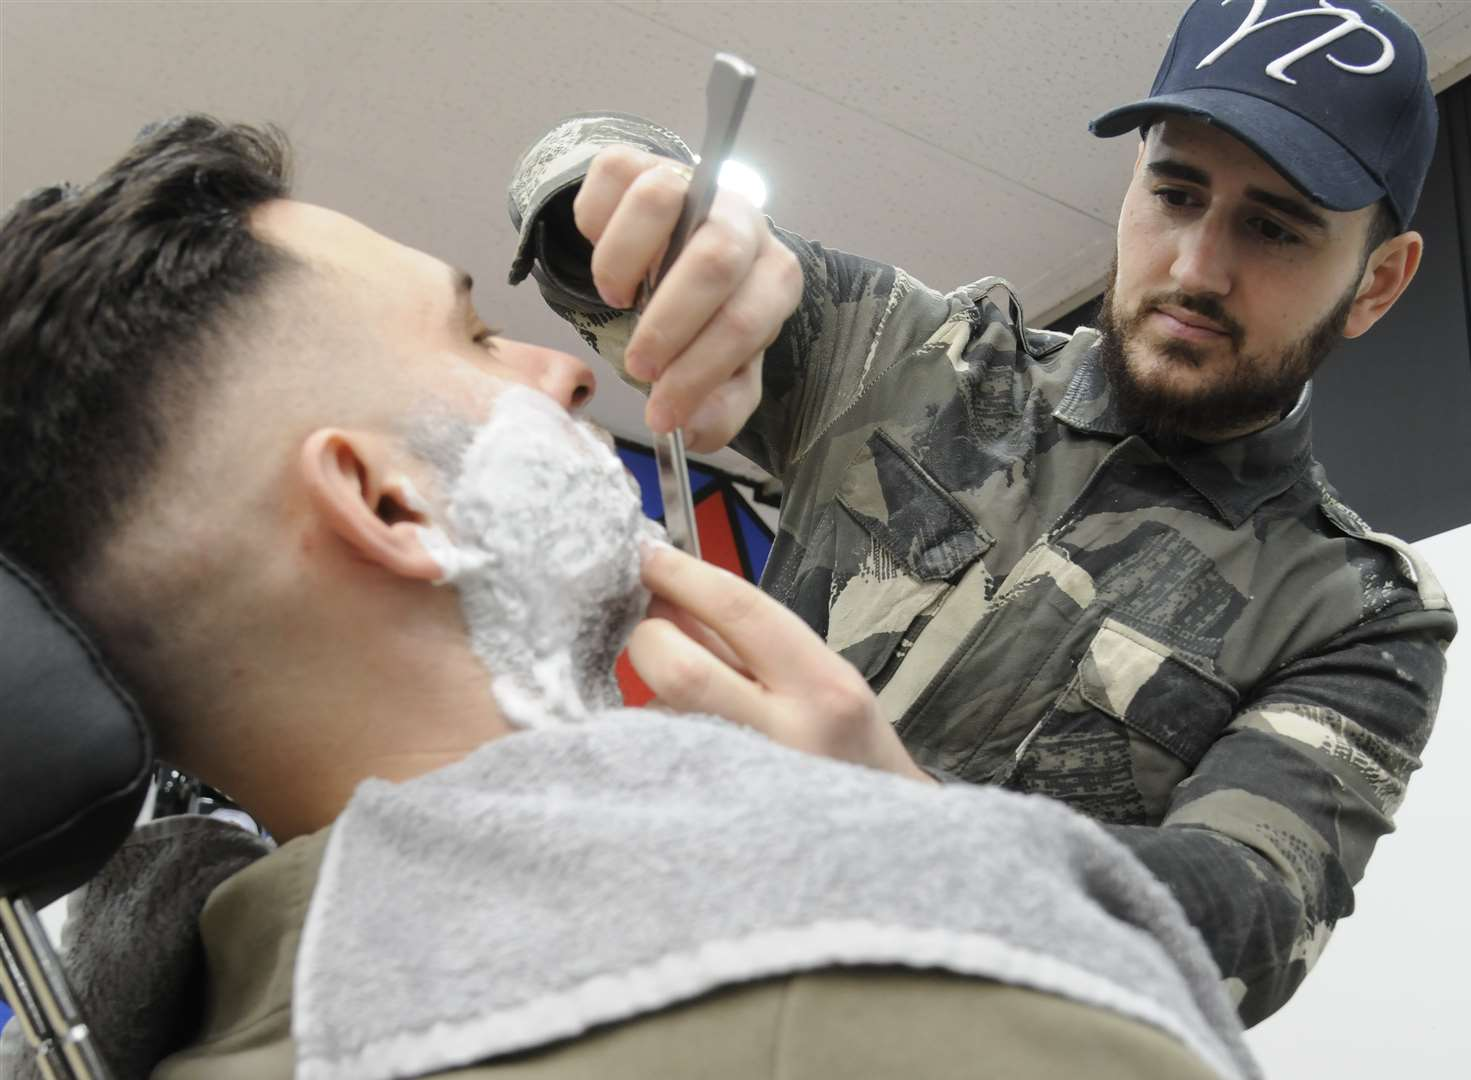 Top barber Salih goes face-to-face in wet shave contest